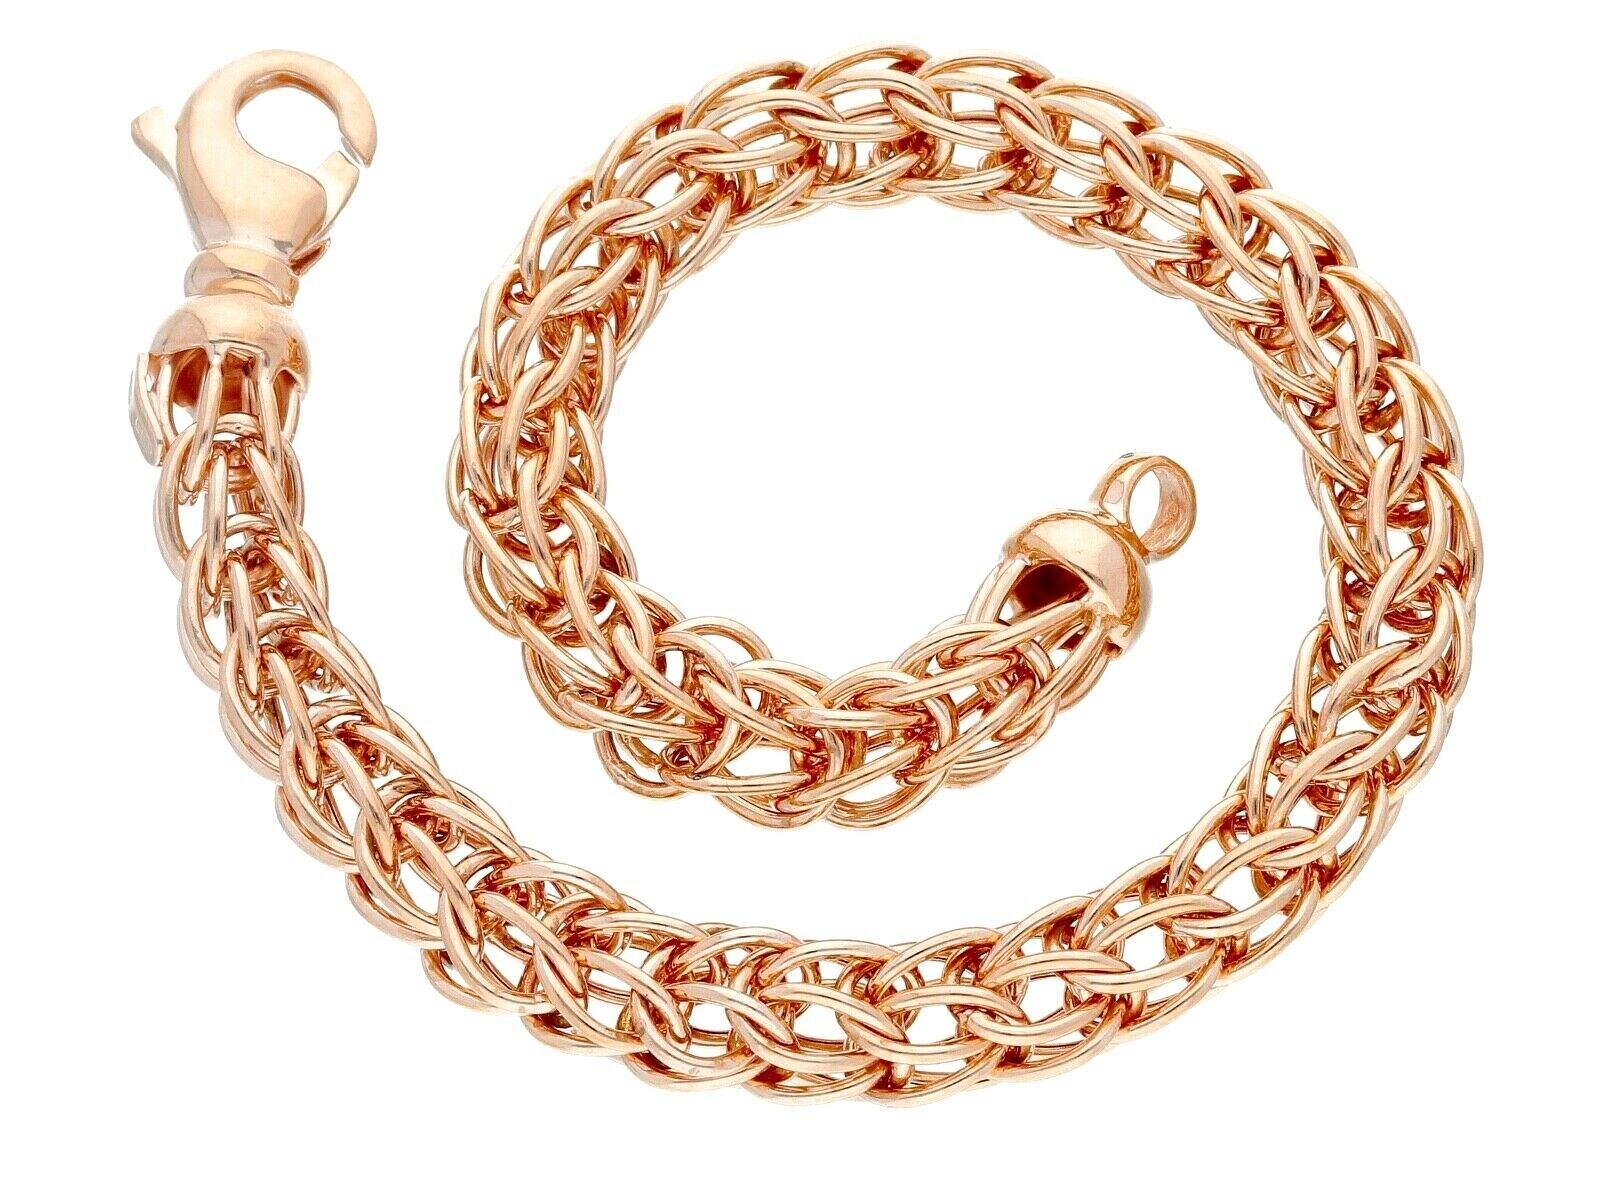 18K ROSE GOLD BRACELET BYZANTINE ROUND TUBE LINK 6.5mm, 19cm MADE IN ITALY